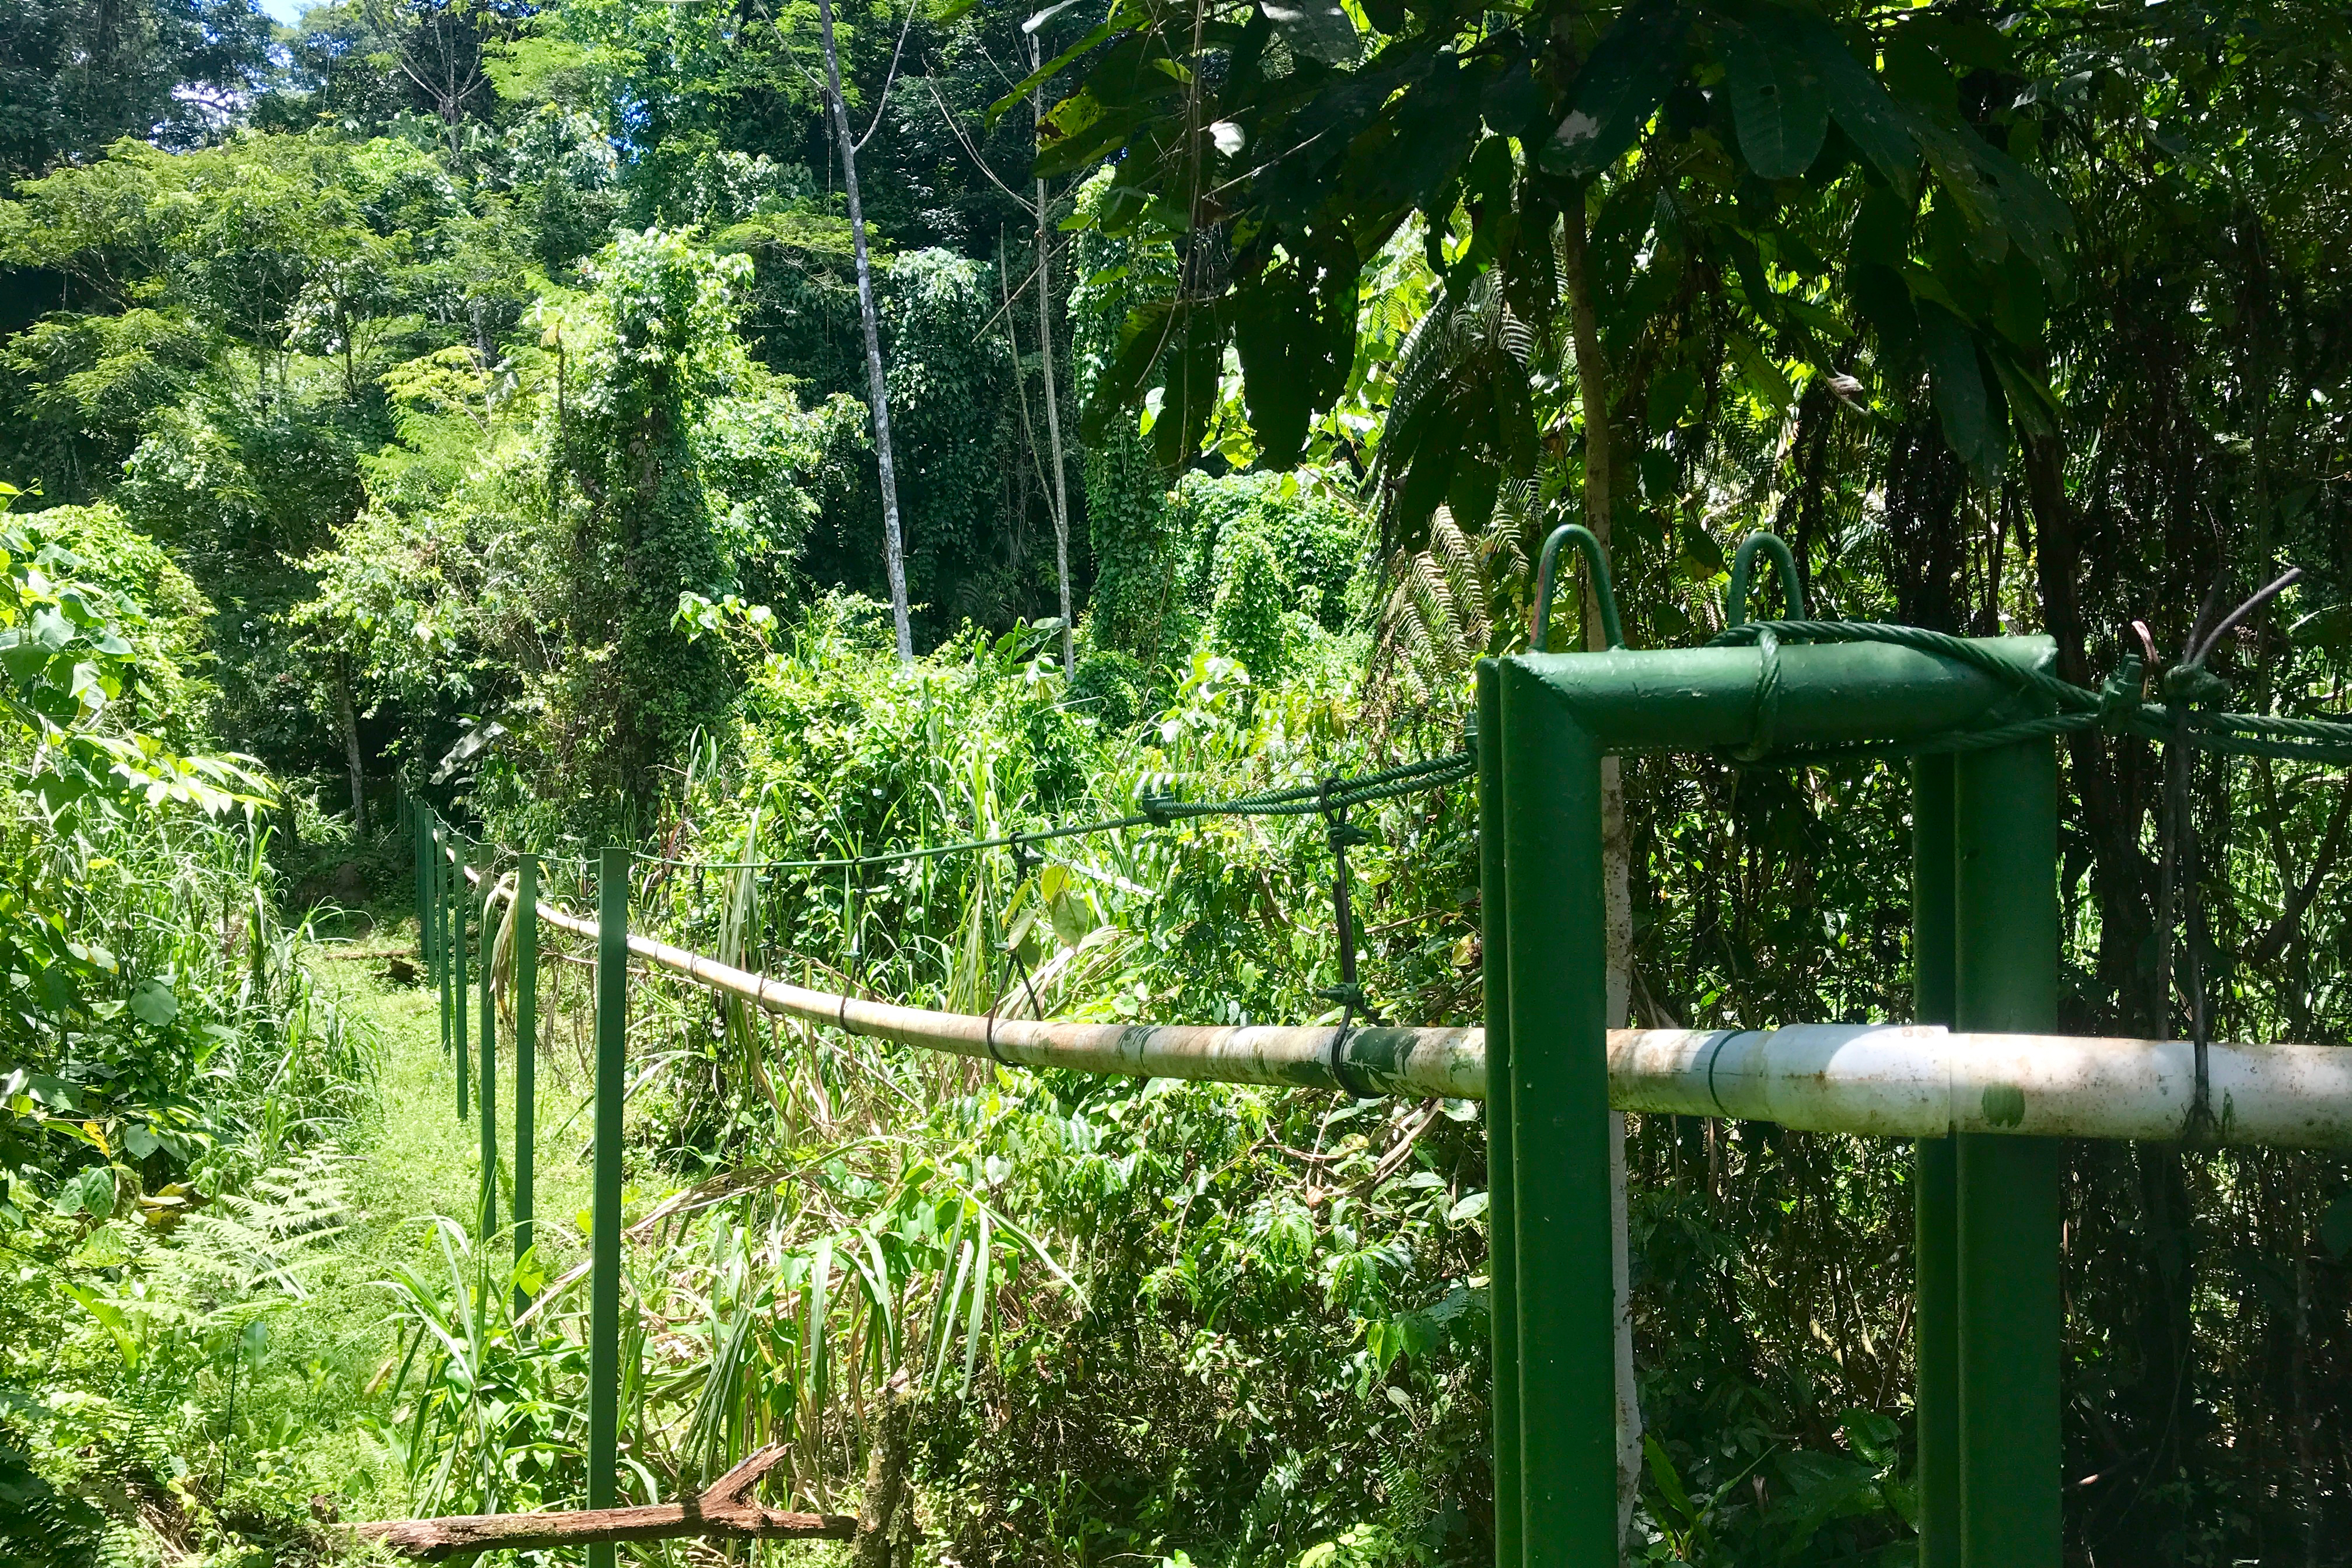 the completed Rustic Pathways Foundation aqueduct pipeline in Yorkin Costa Rica